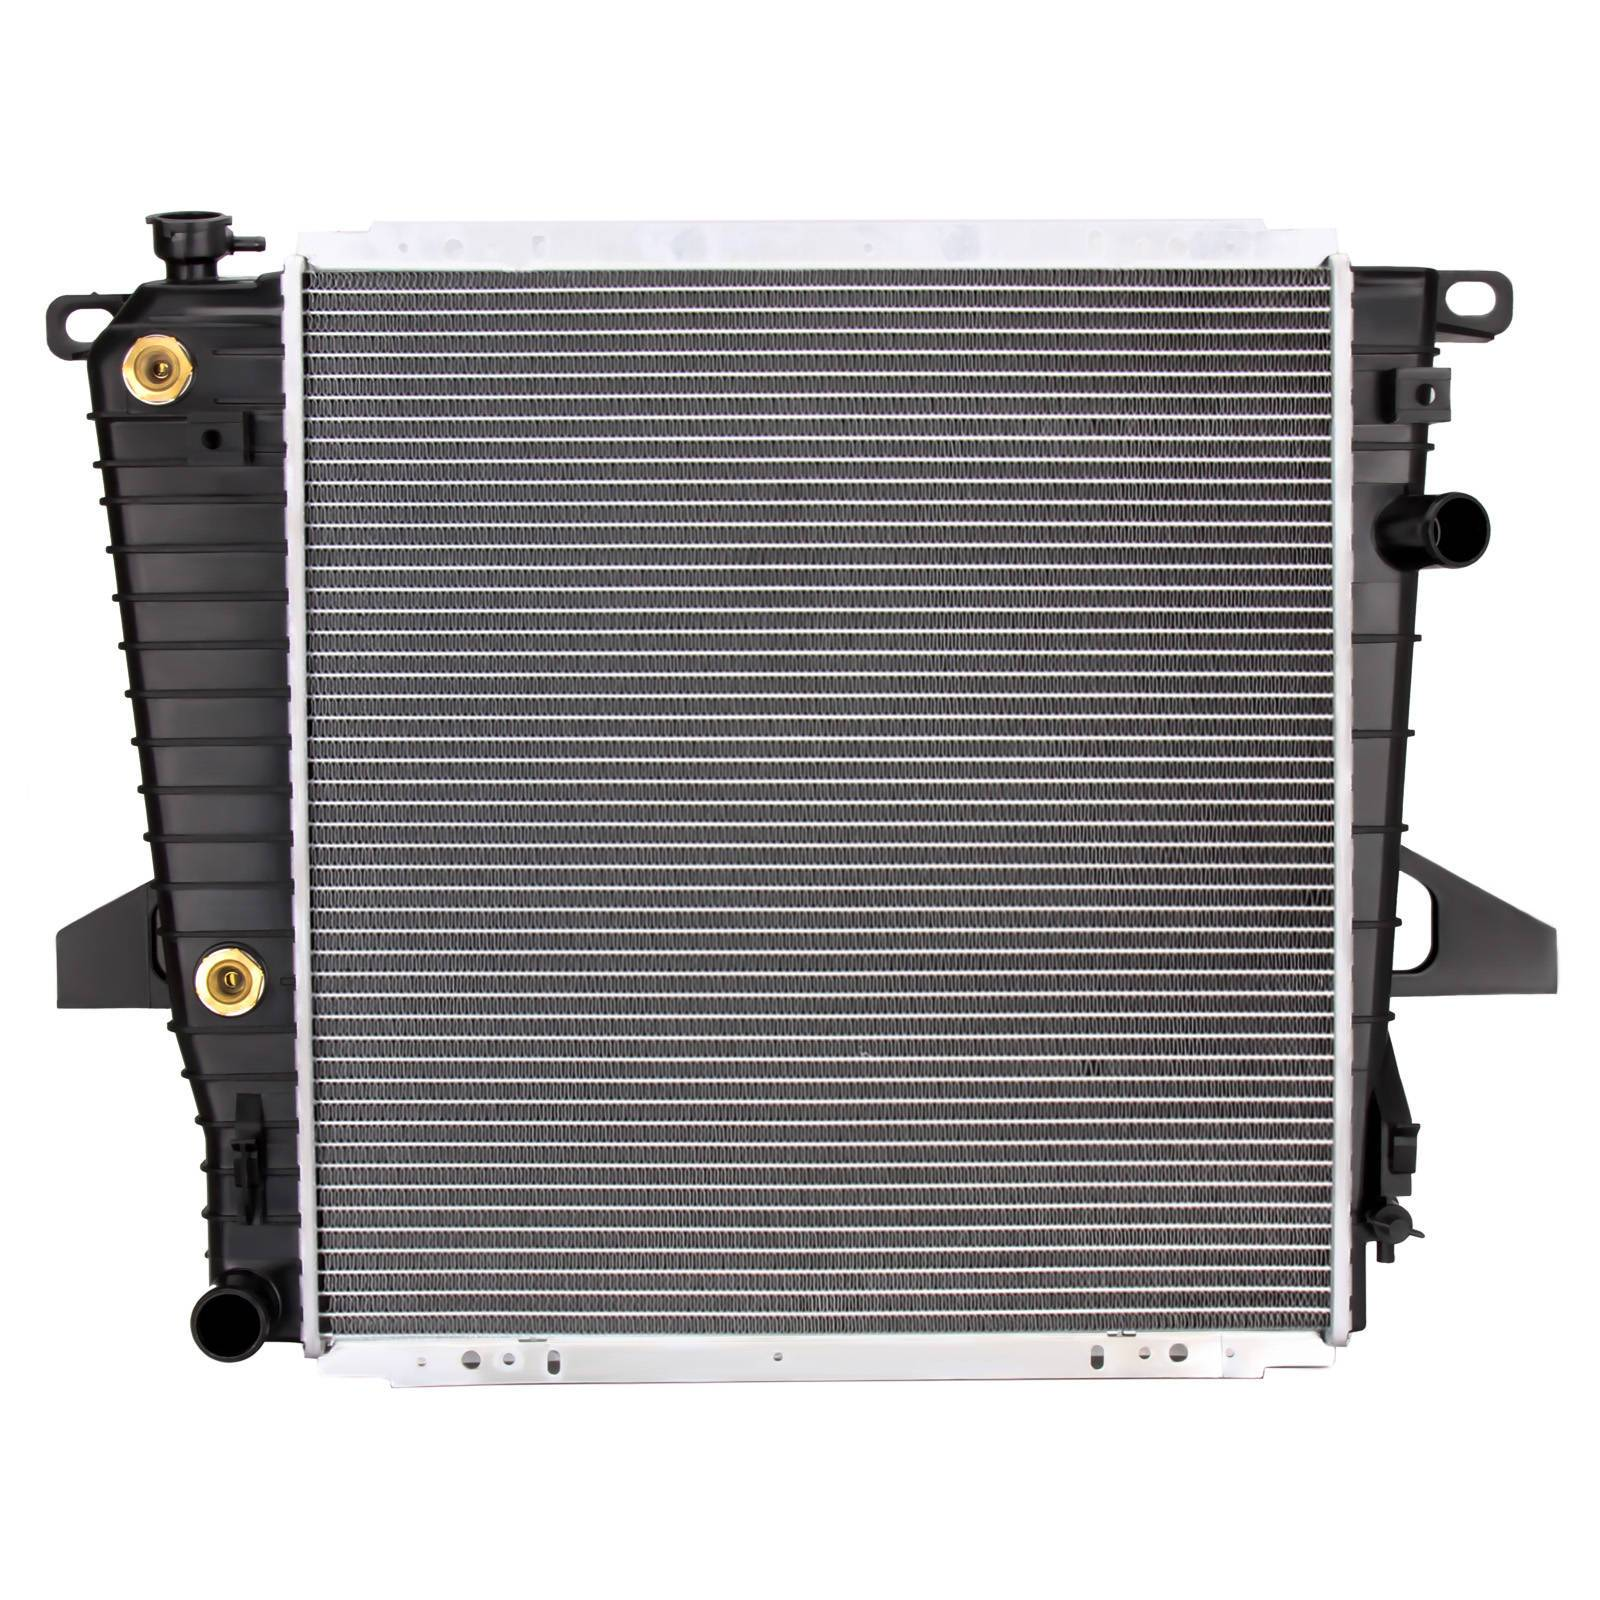 1728 Full Aluminum Radiator For Ford Explorer 4.0L 1995 1996 1997 Brand New